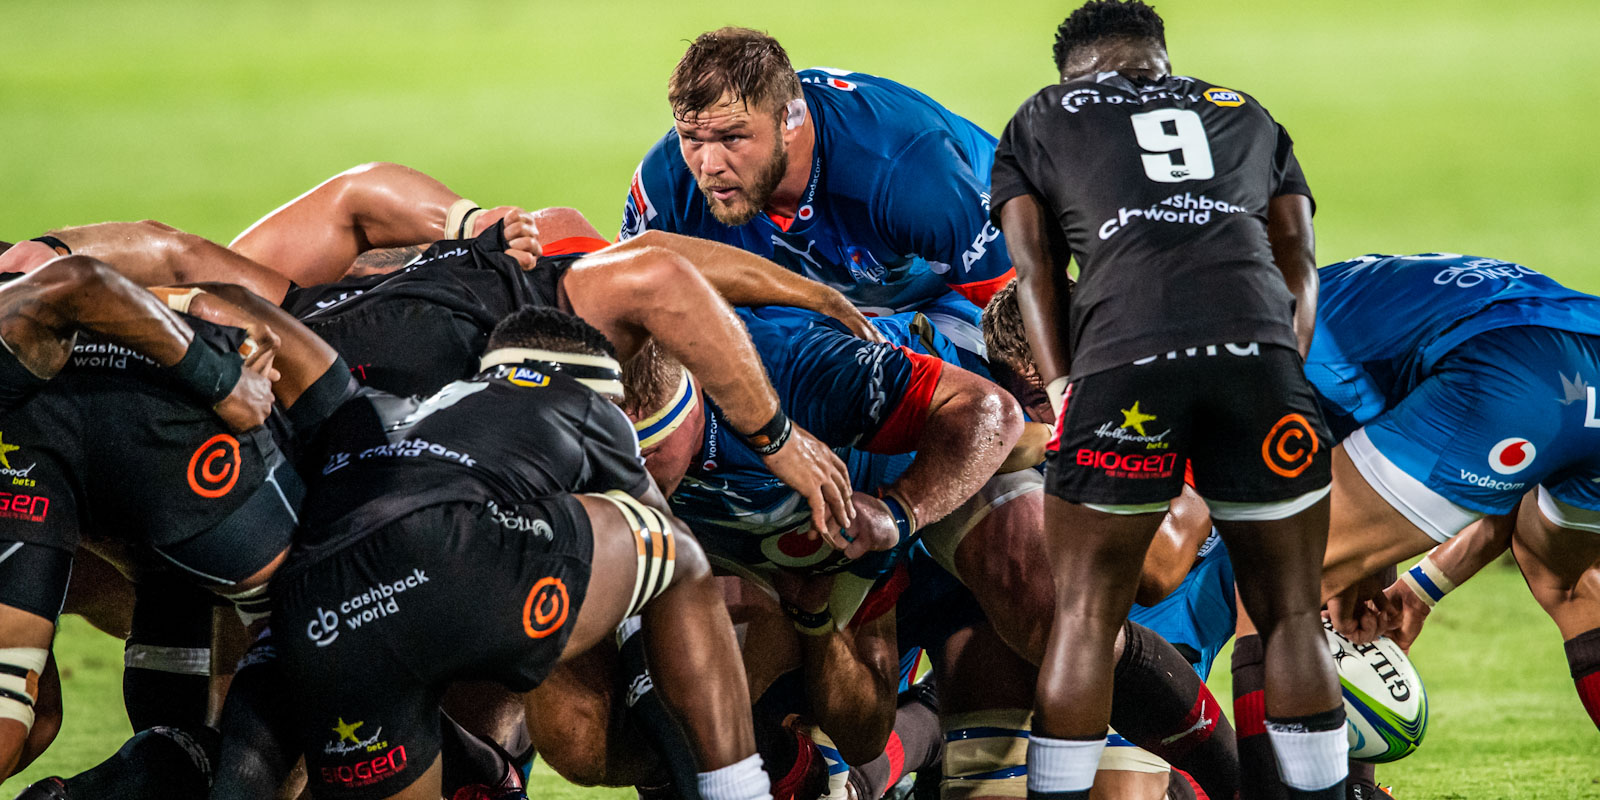 Duane Vermeulen was named Man of the Match.